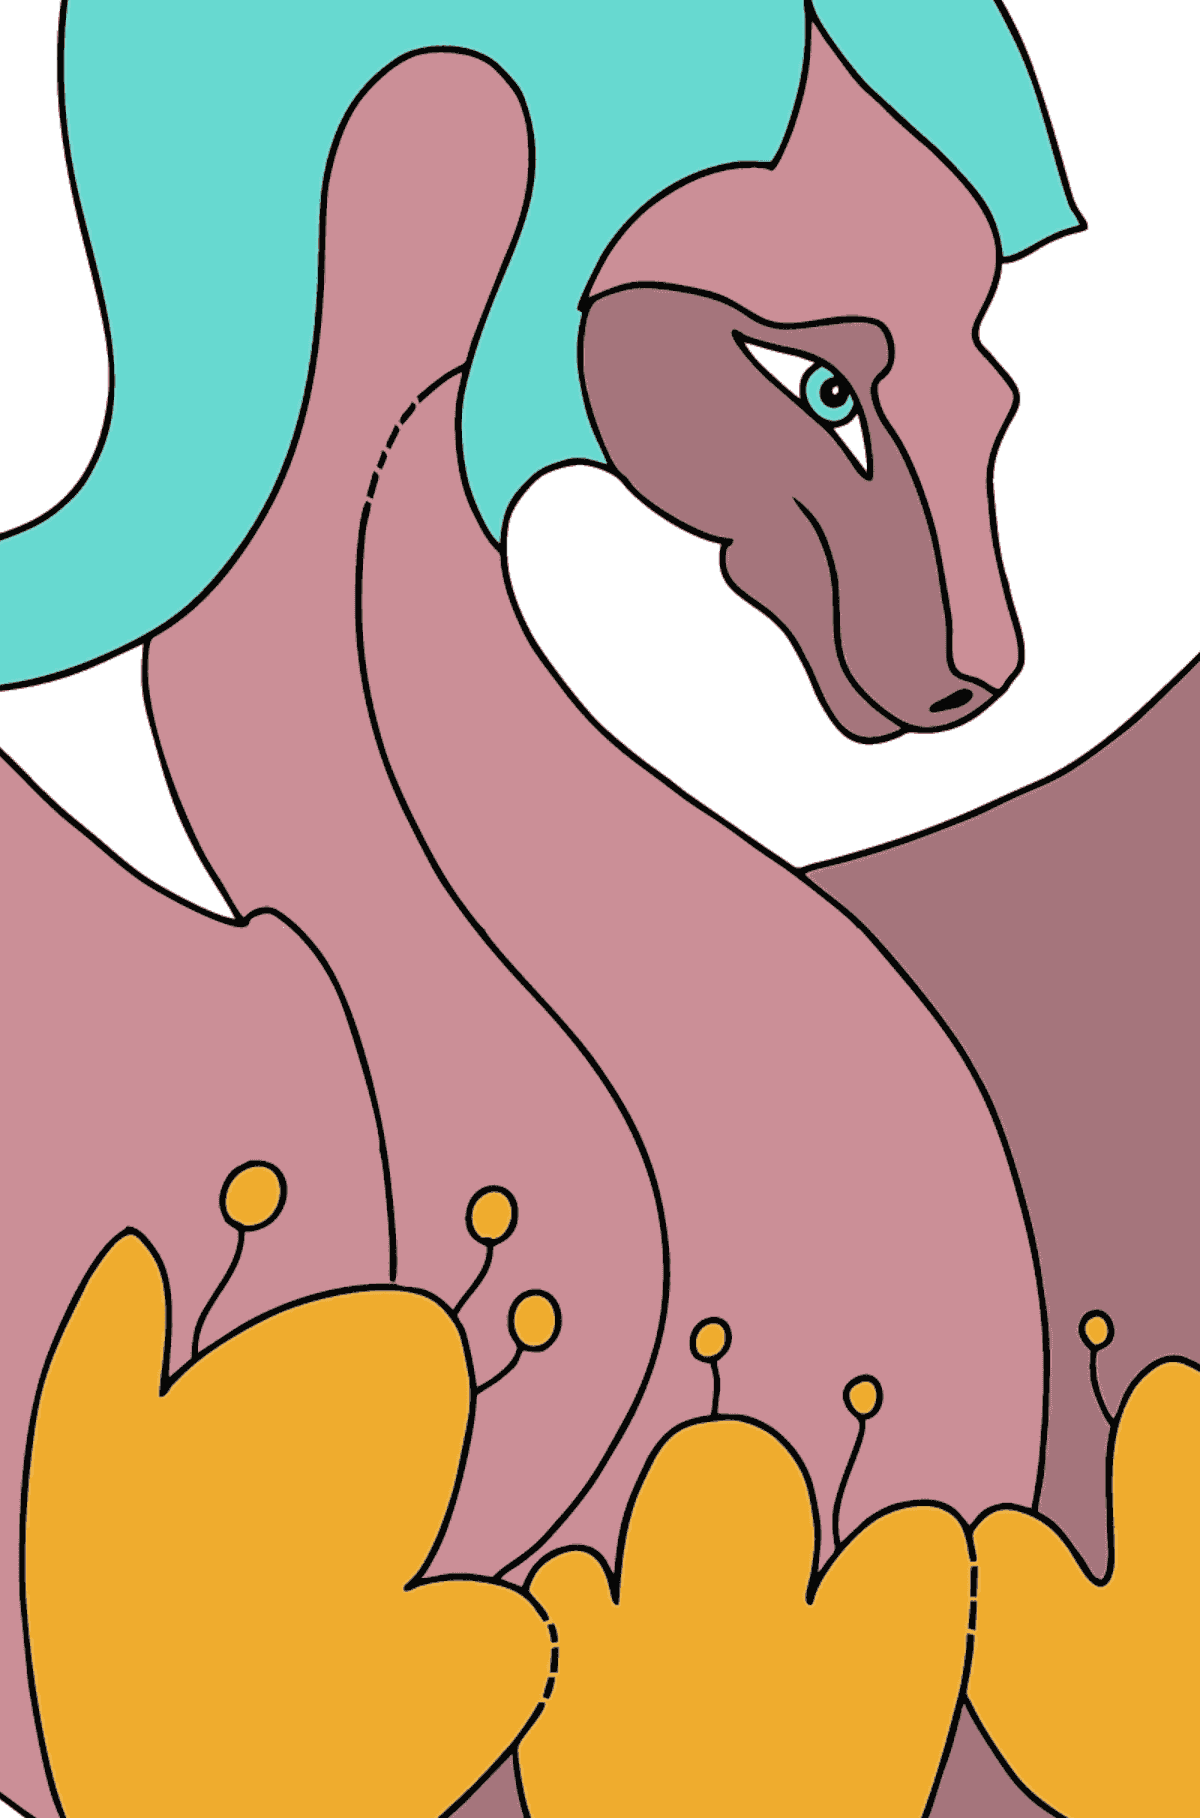 Coloring Page - A Dragon of the Violet Color - Coloring by Letters for Children